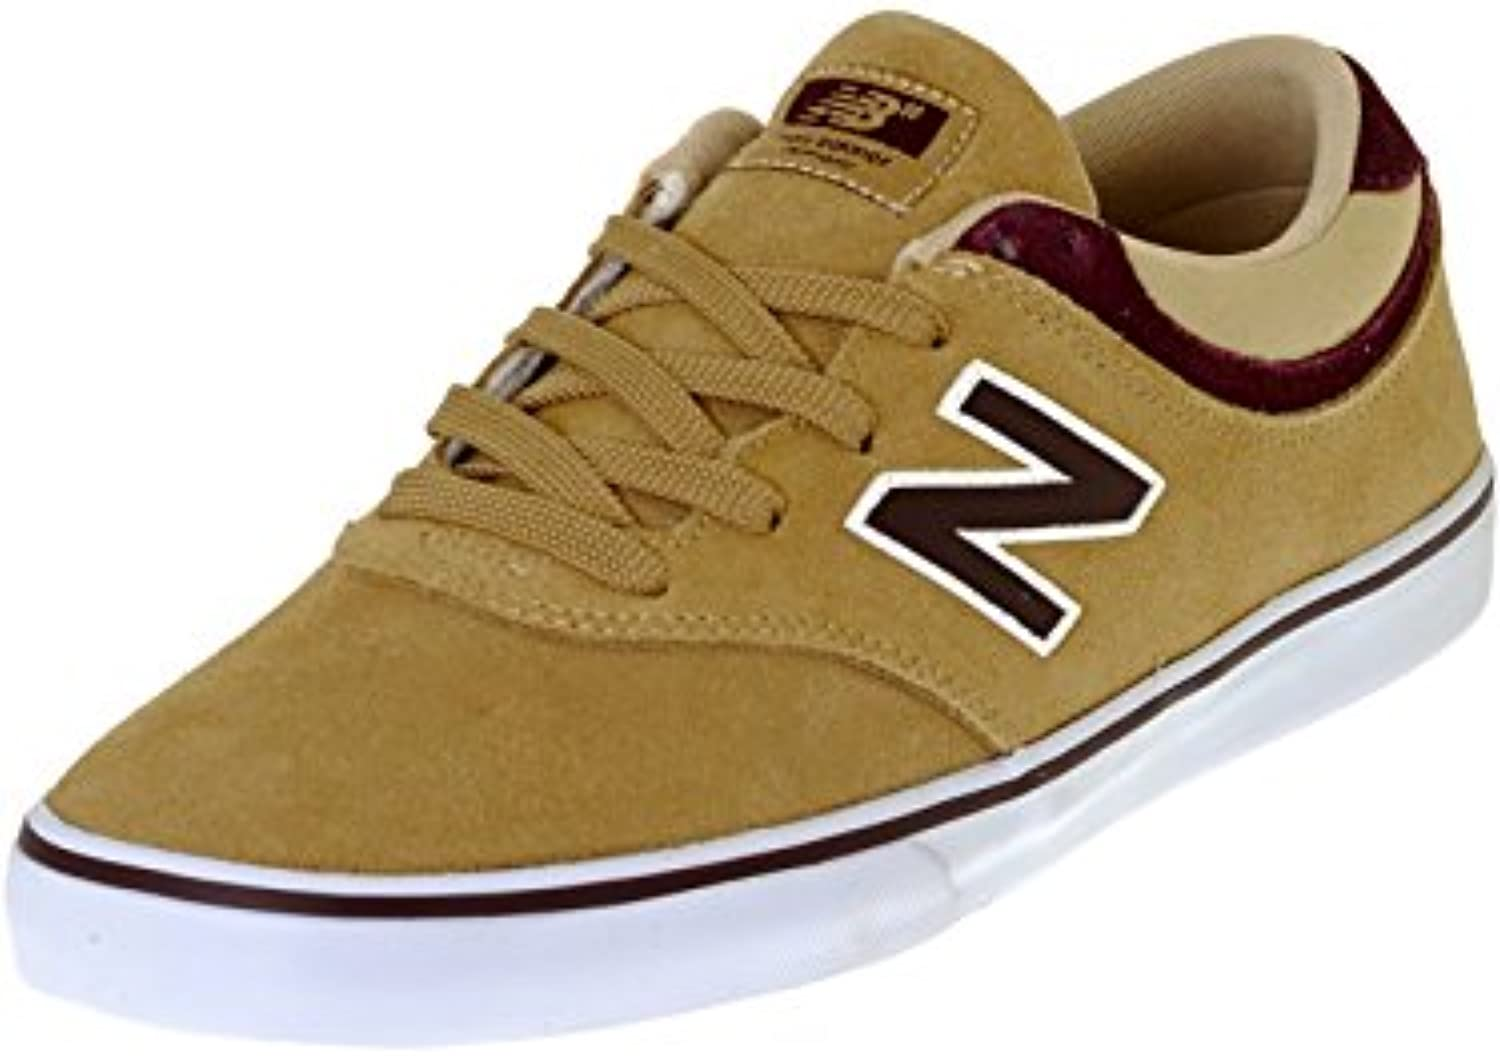 Zapatos New Balance Numeric Quincy 254 Dust-Supernova Rojo (Eu 40.5 / Us 7.5 , Marron)